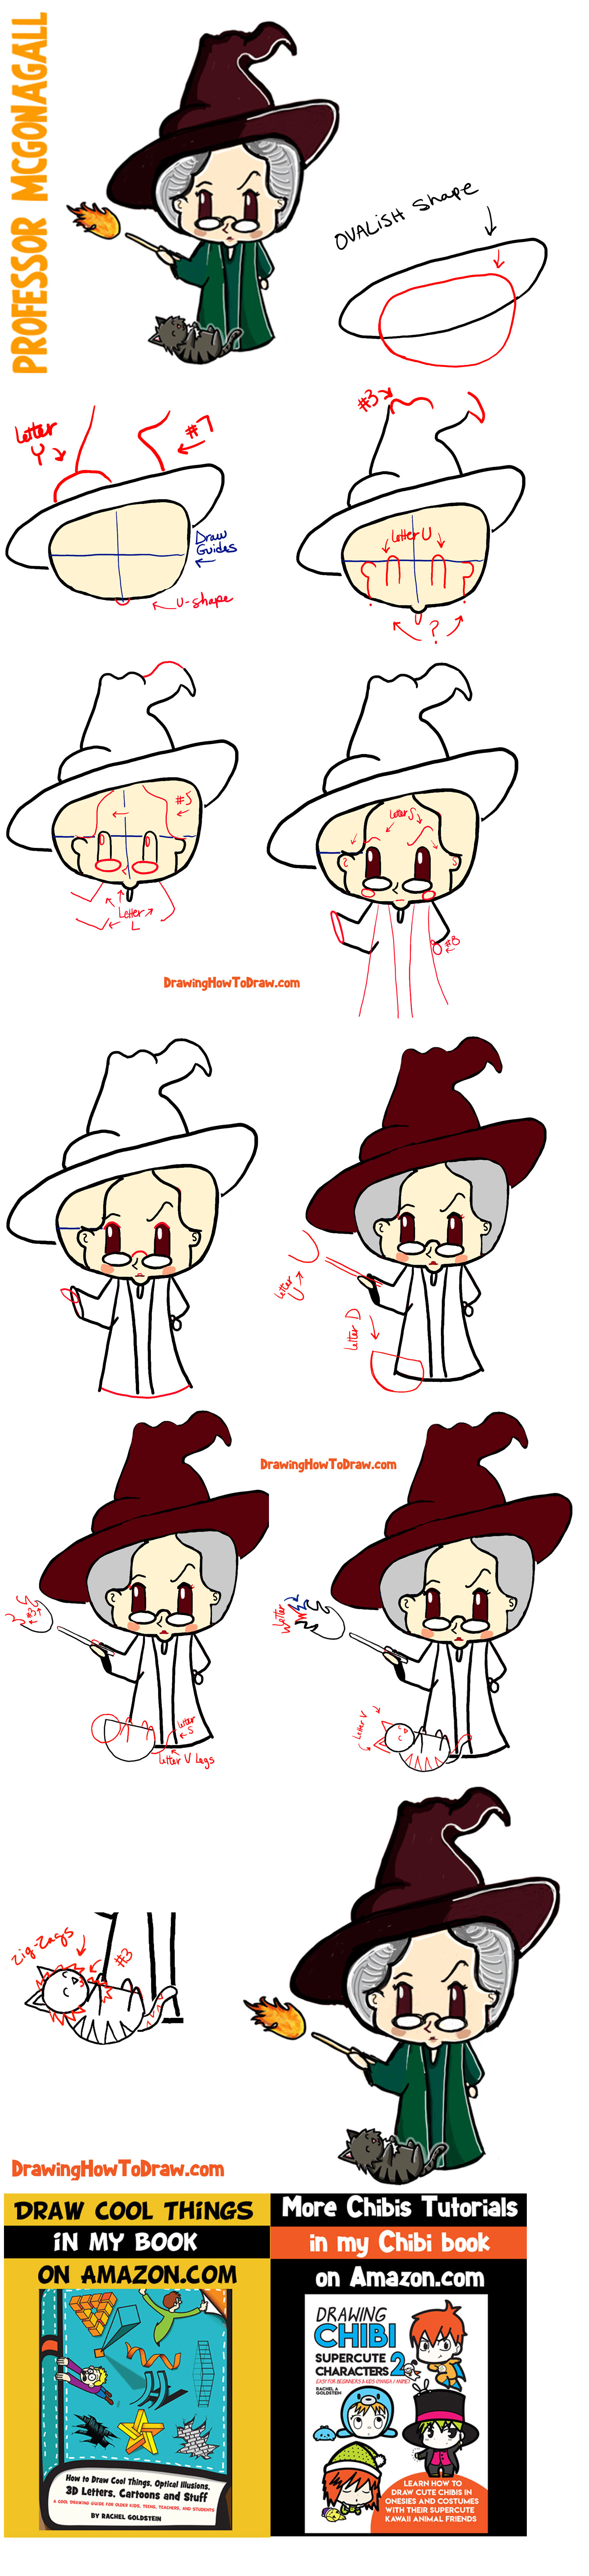 How to Draw a Cute Chibi Professor McGonagall and Cat from Harry Potter